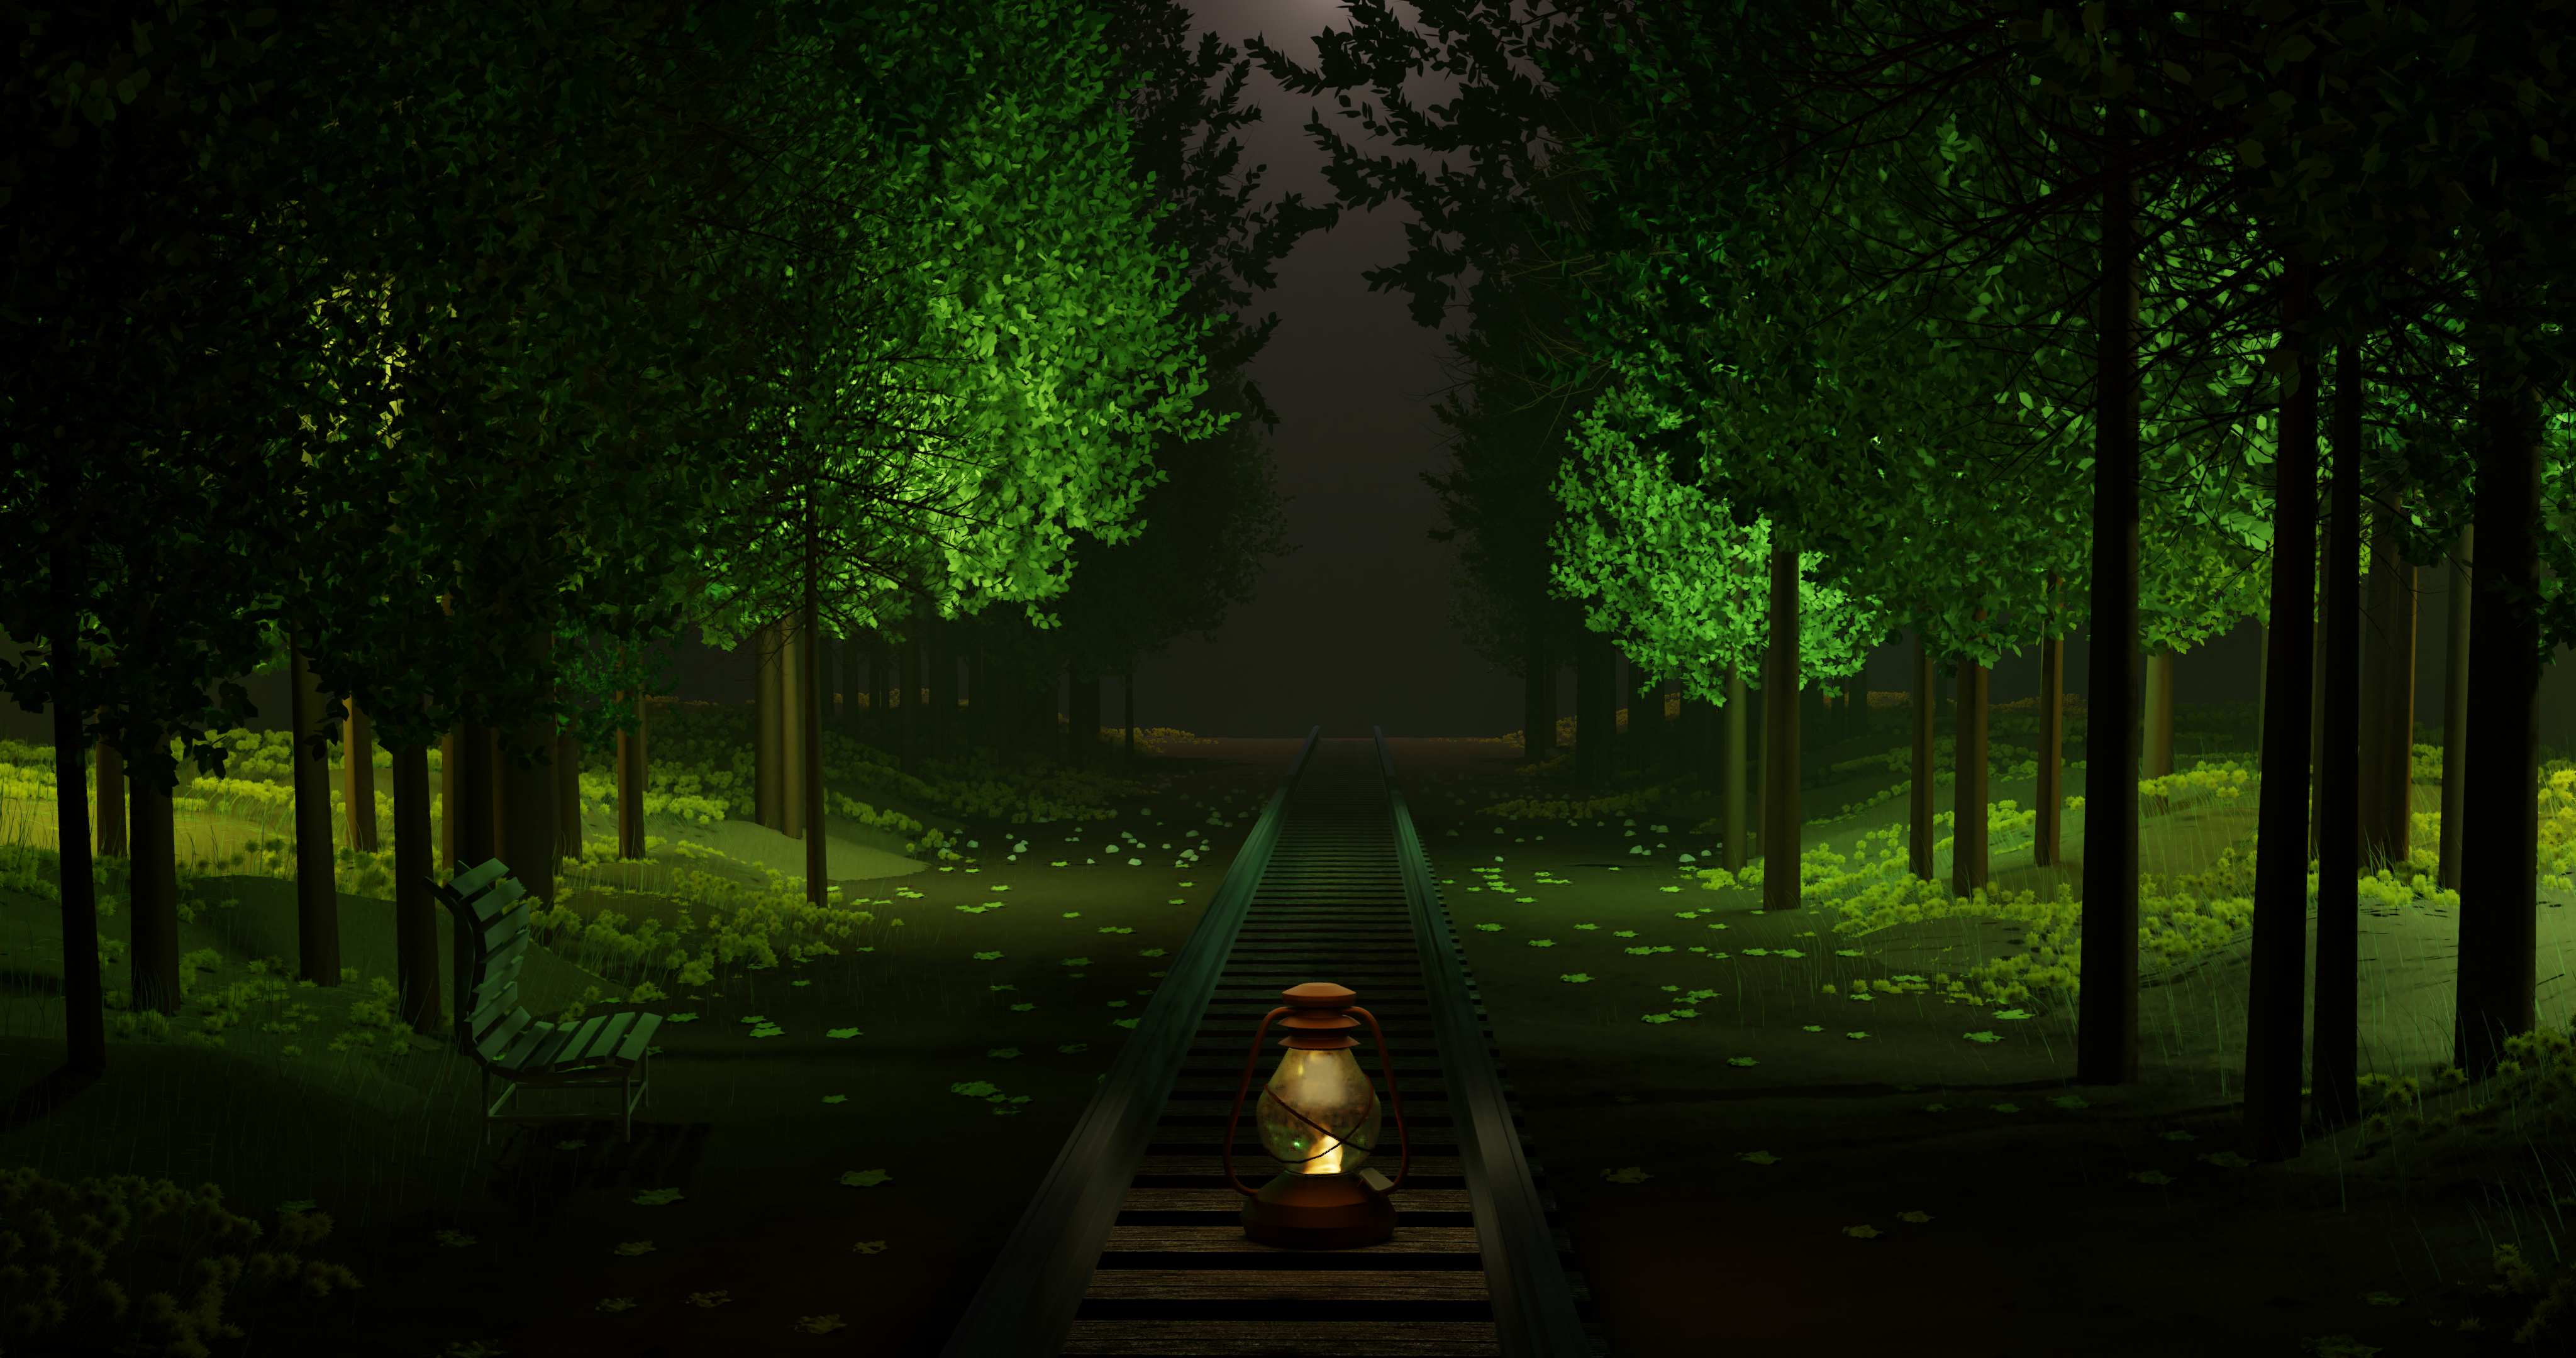 Railway Track Scene preview image 1